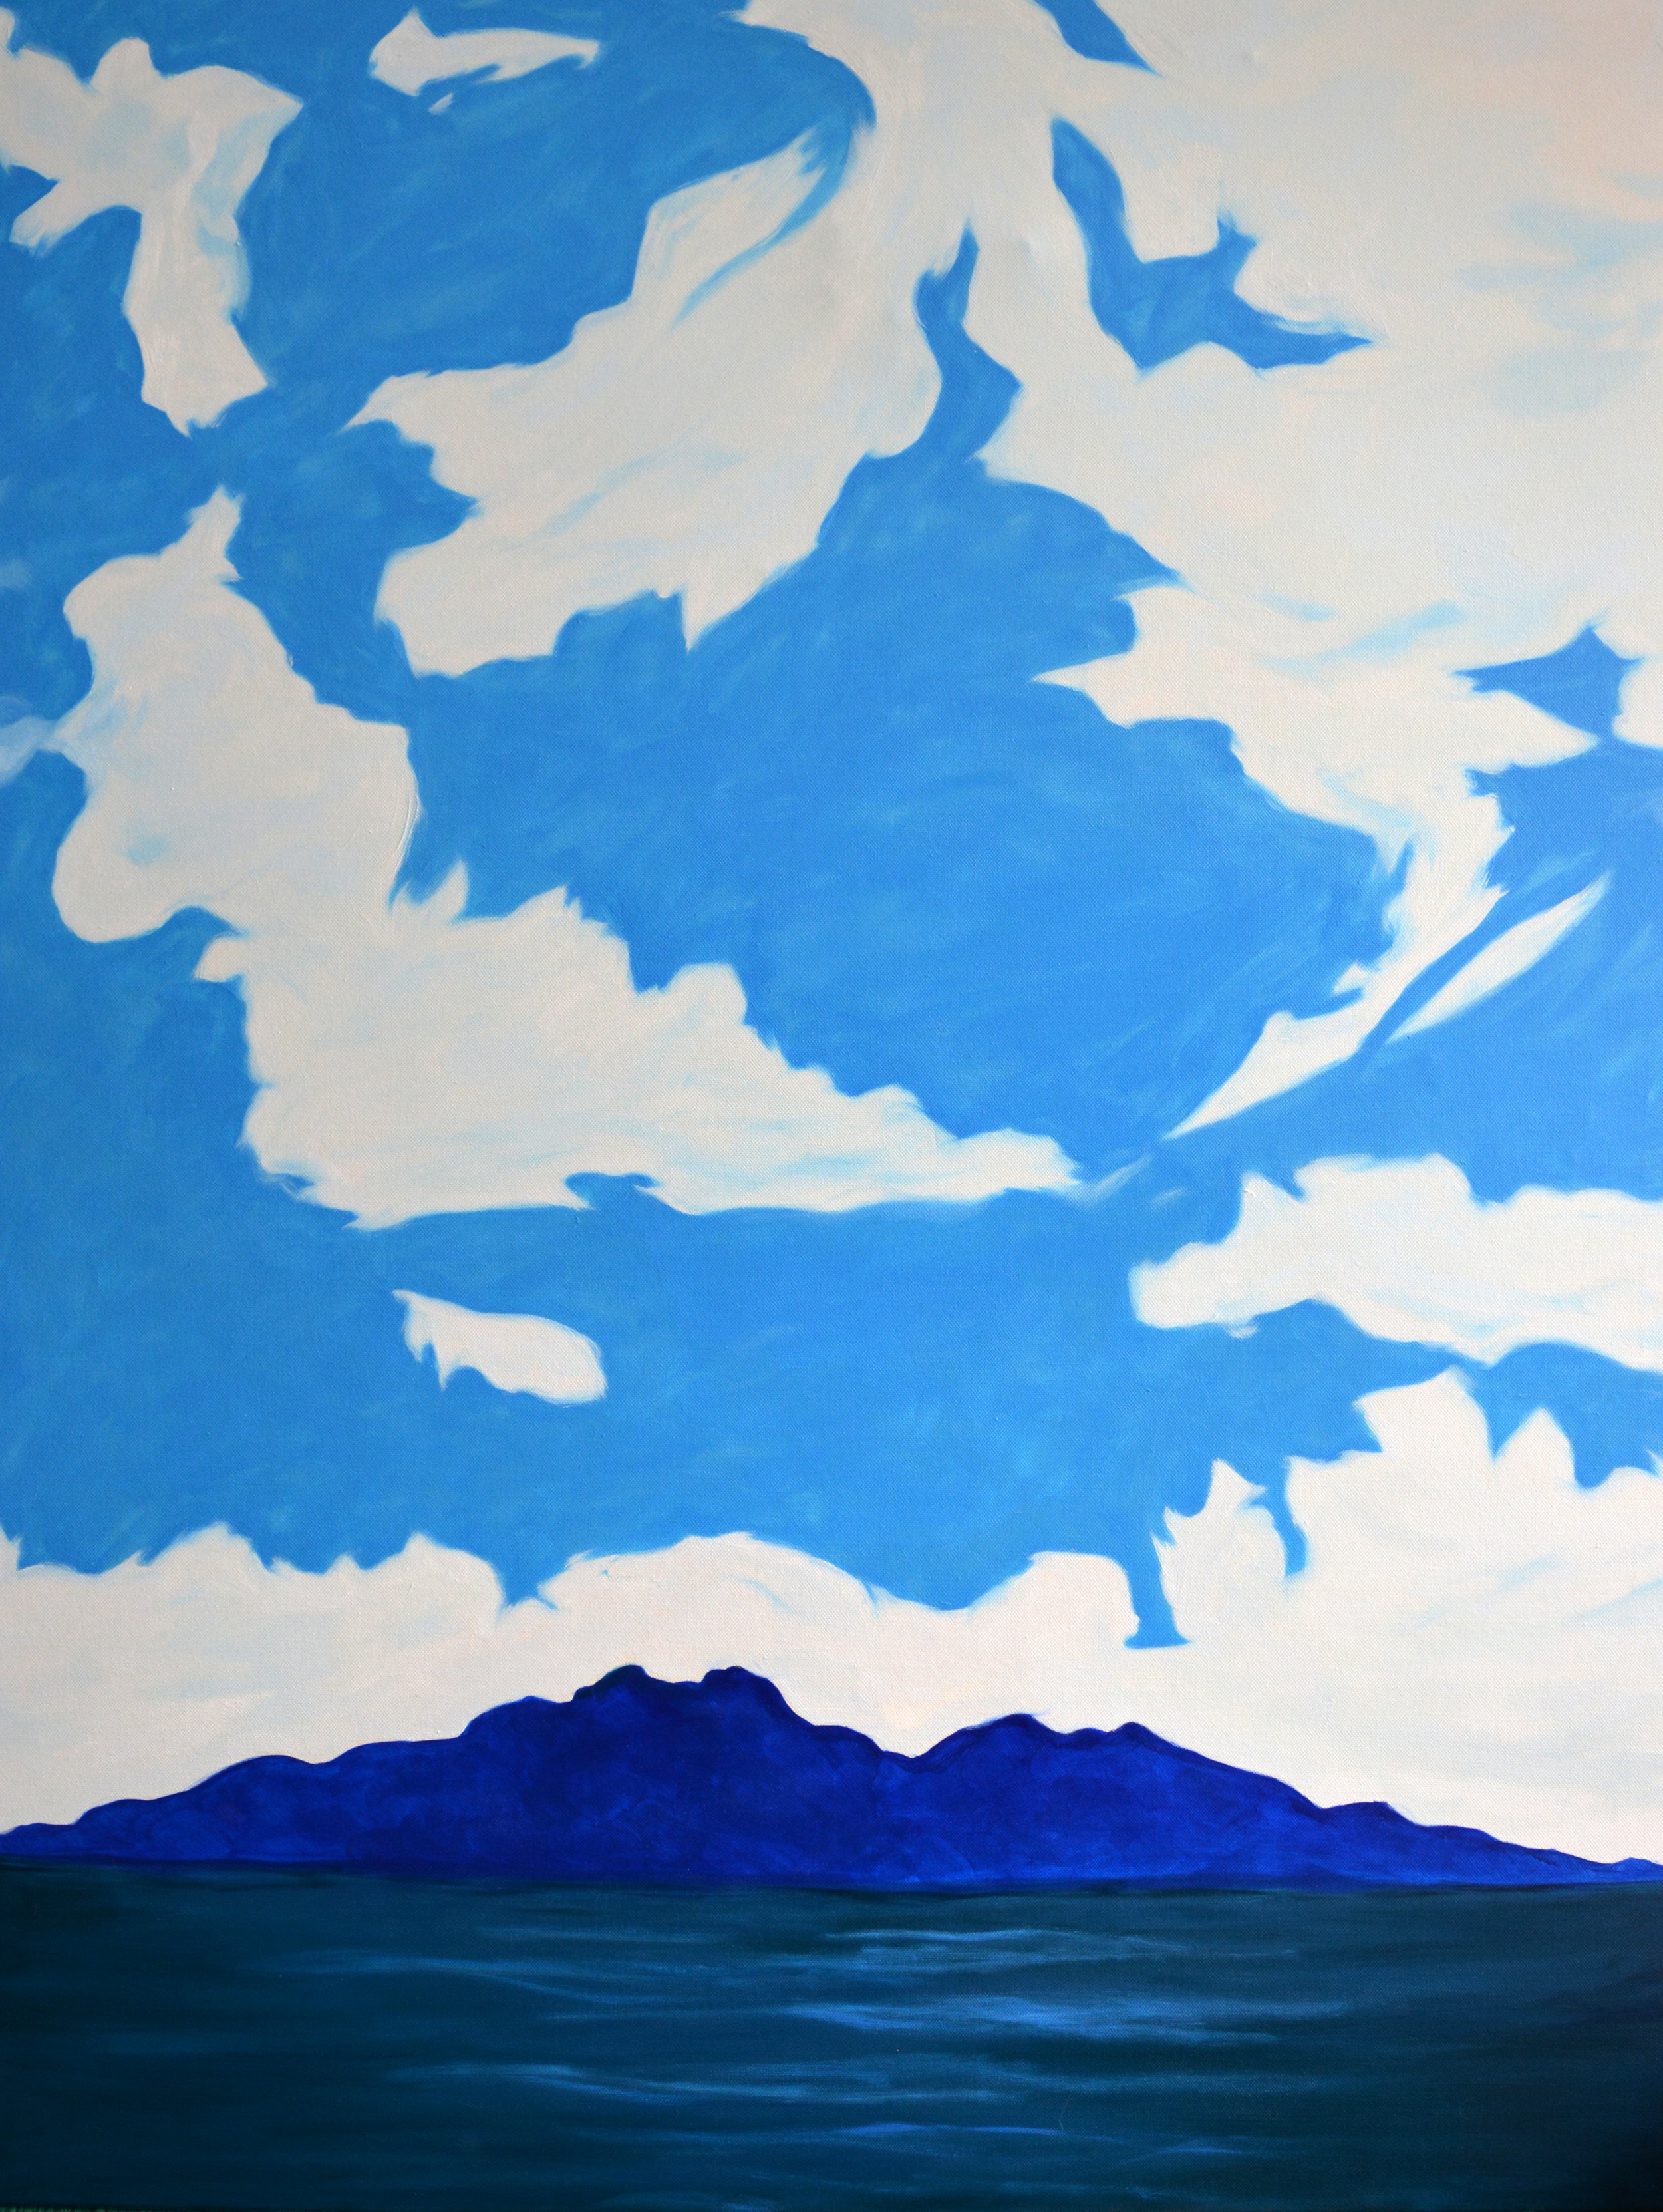 Blue Island 2  48 x 36 inches, oil and acrylic on canvas, 2018